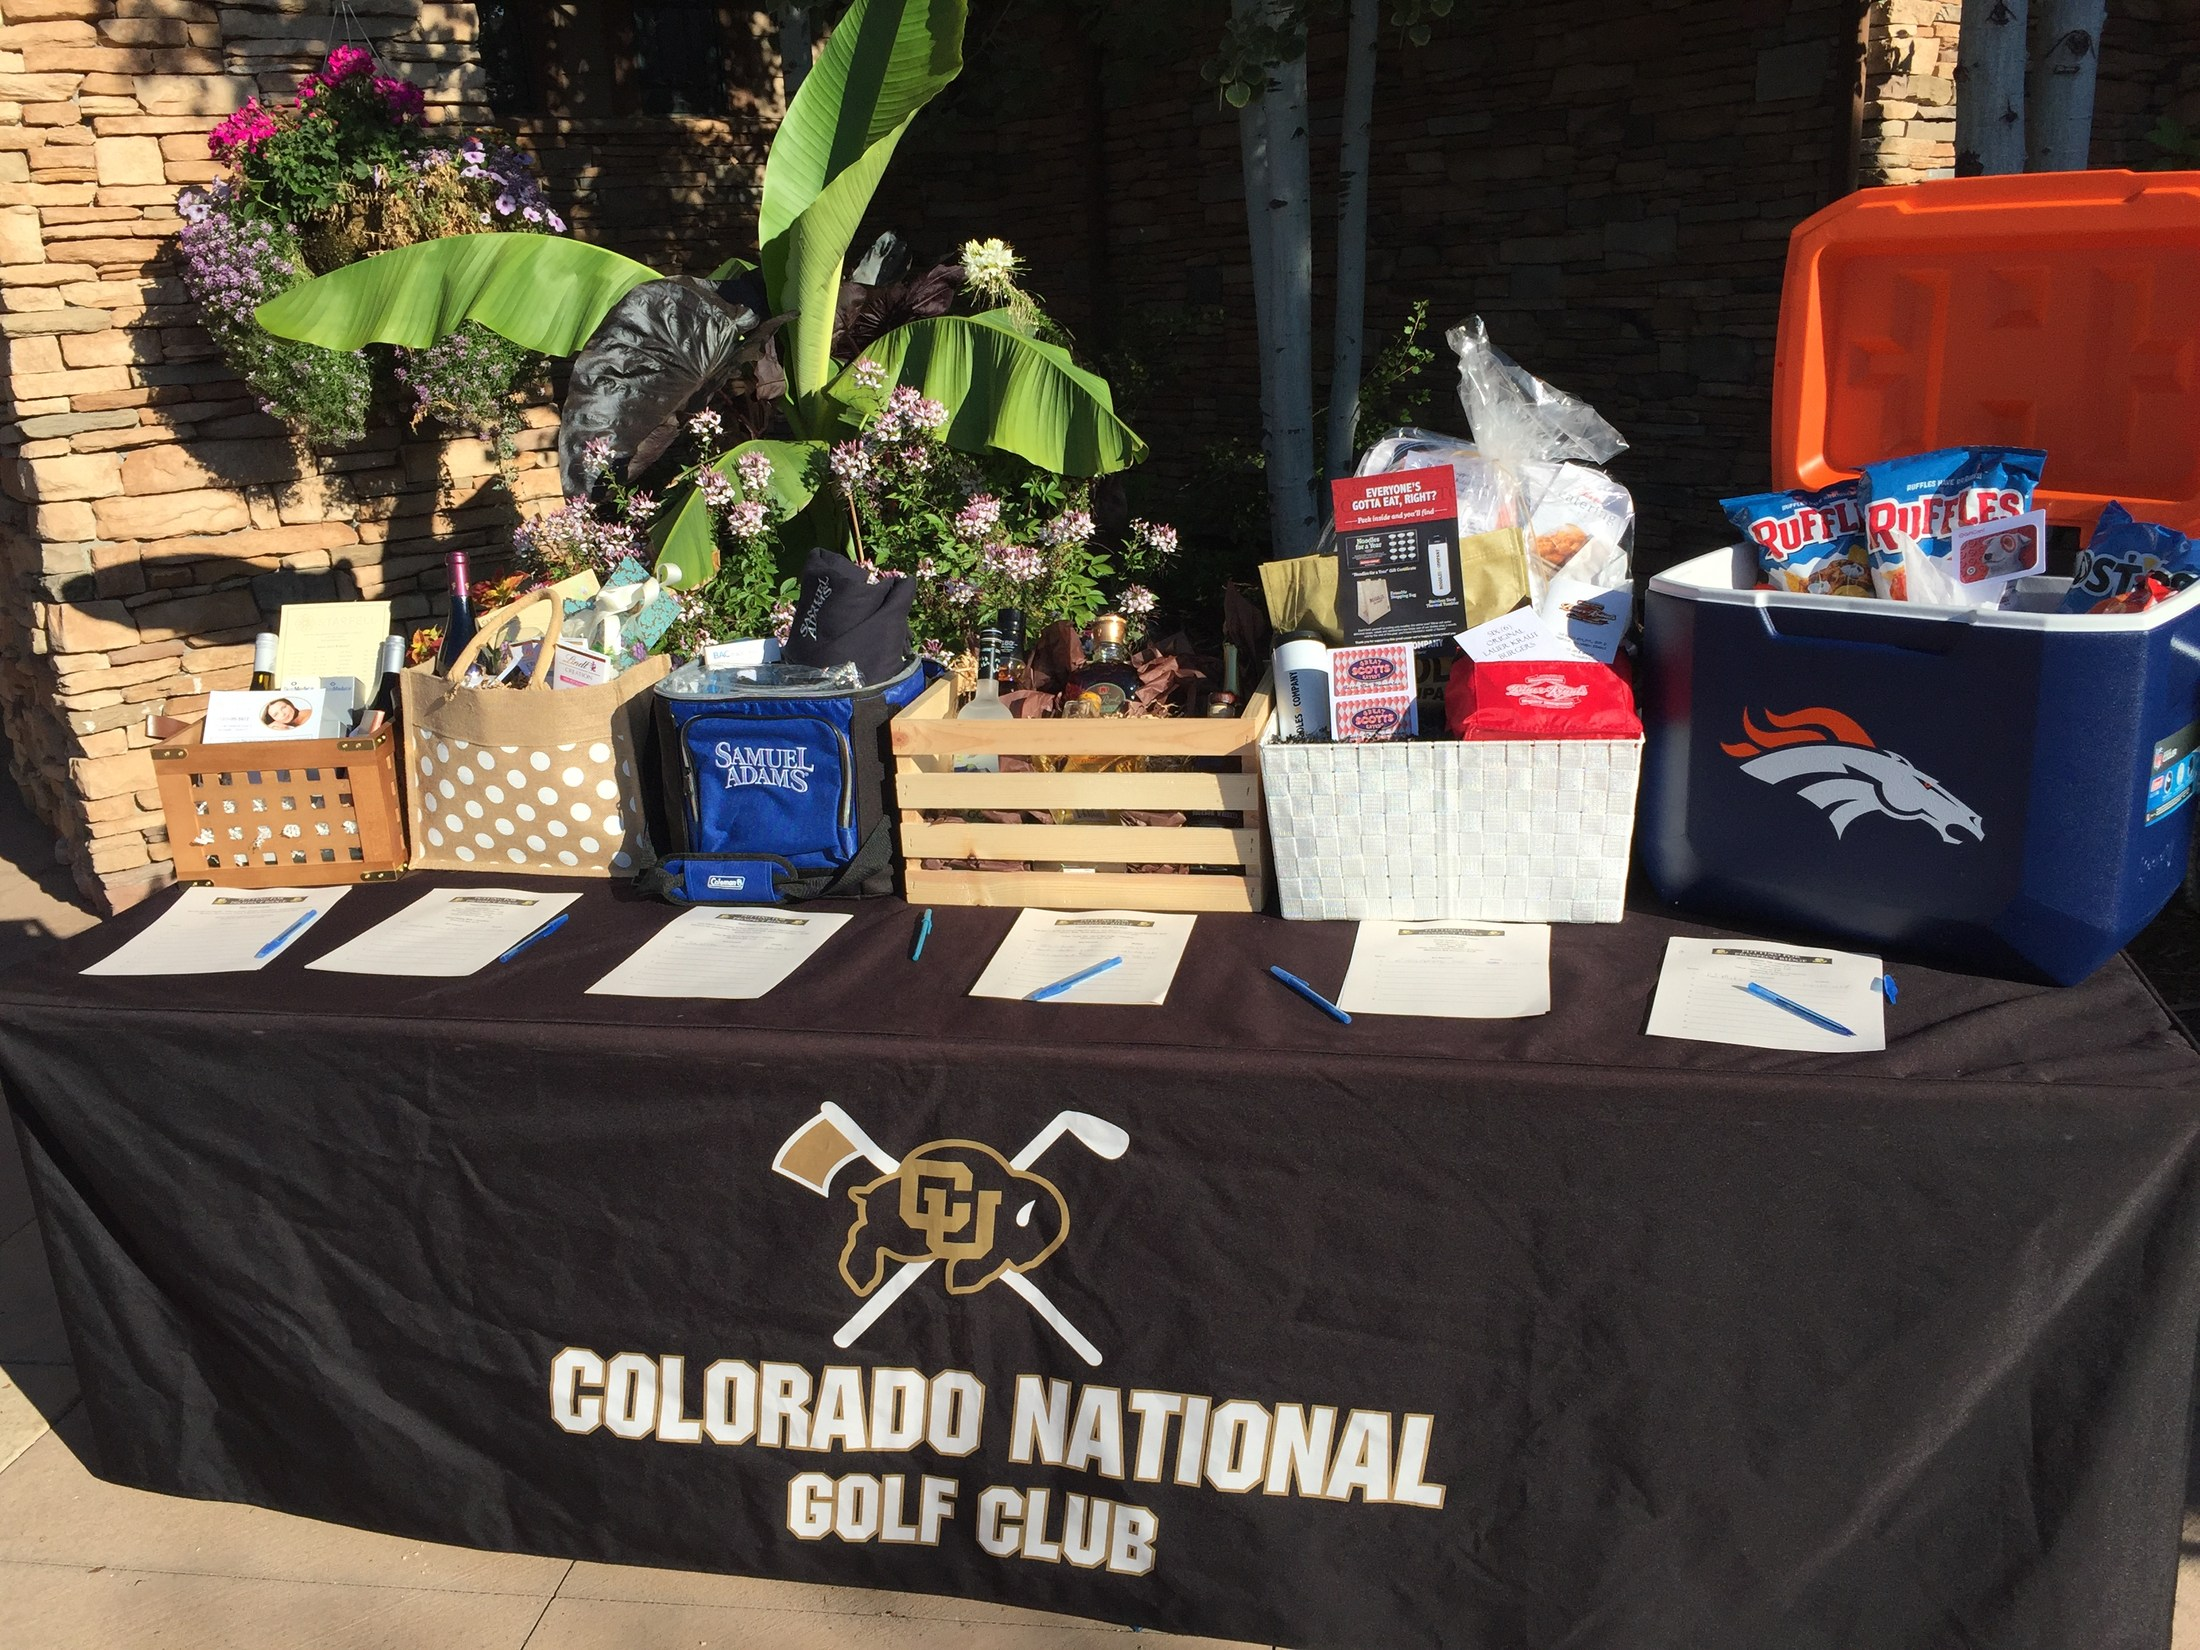 Colorado National Golf Club Registration Table